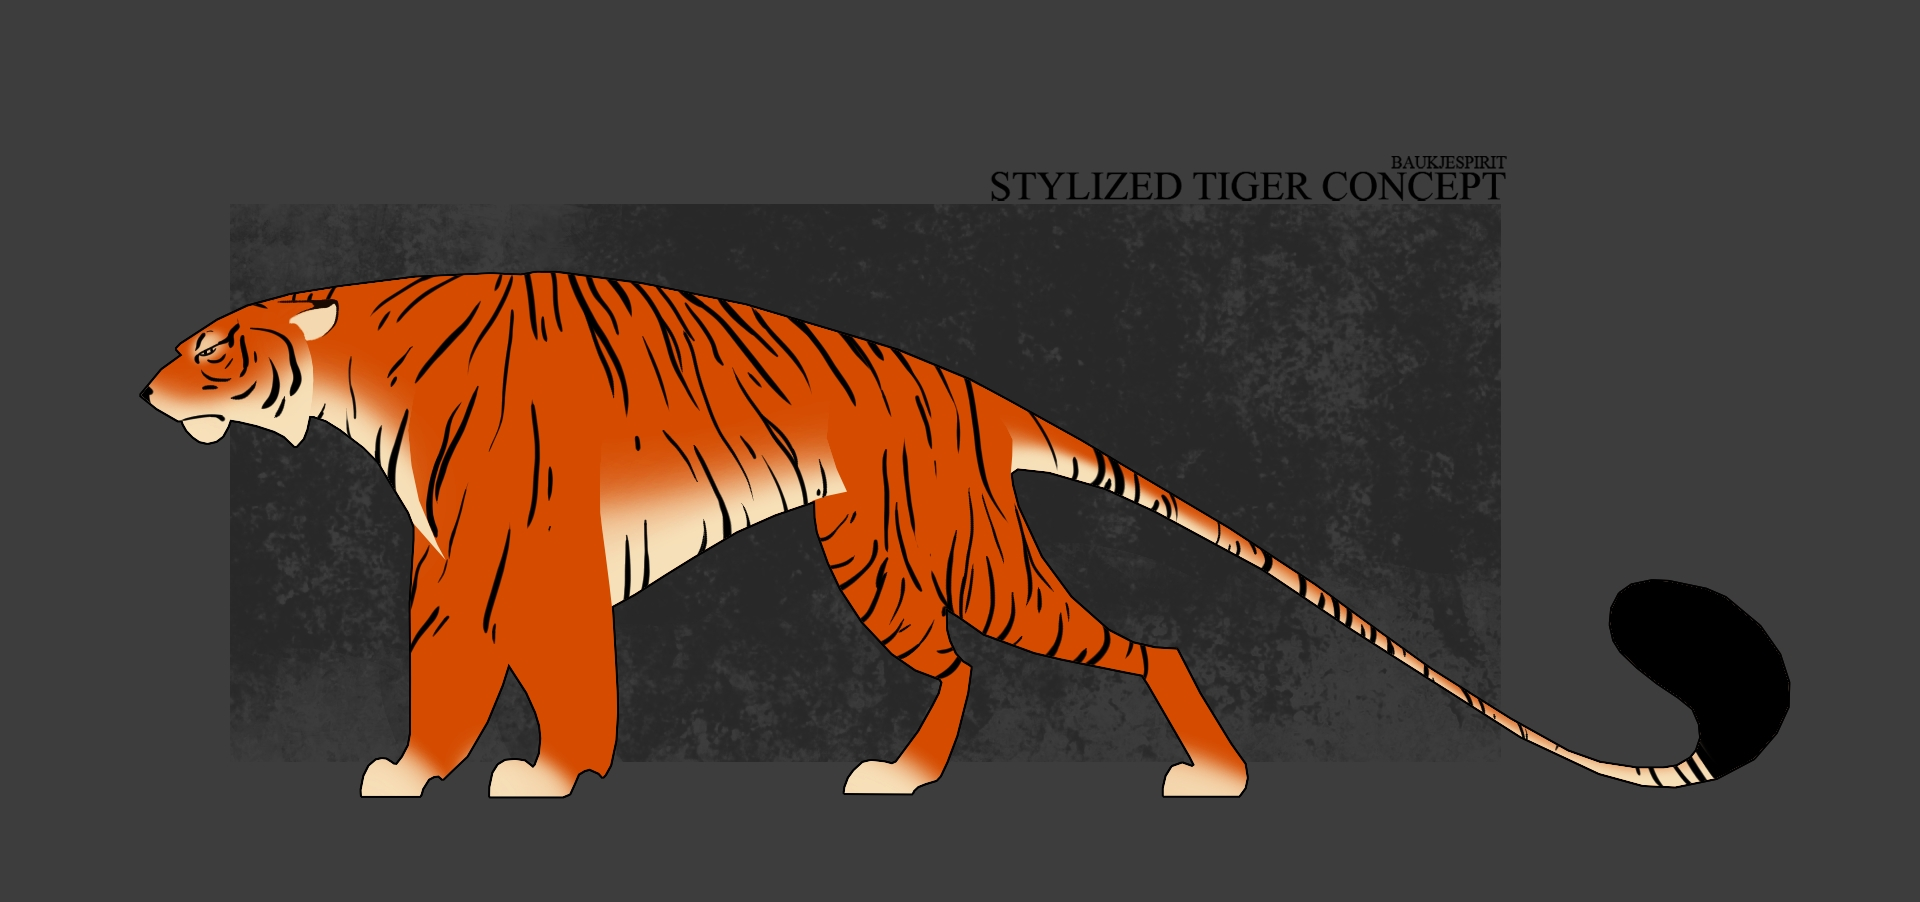 Stylized Tiger Concept